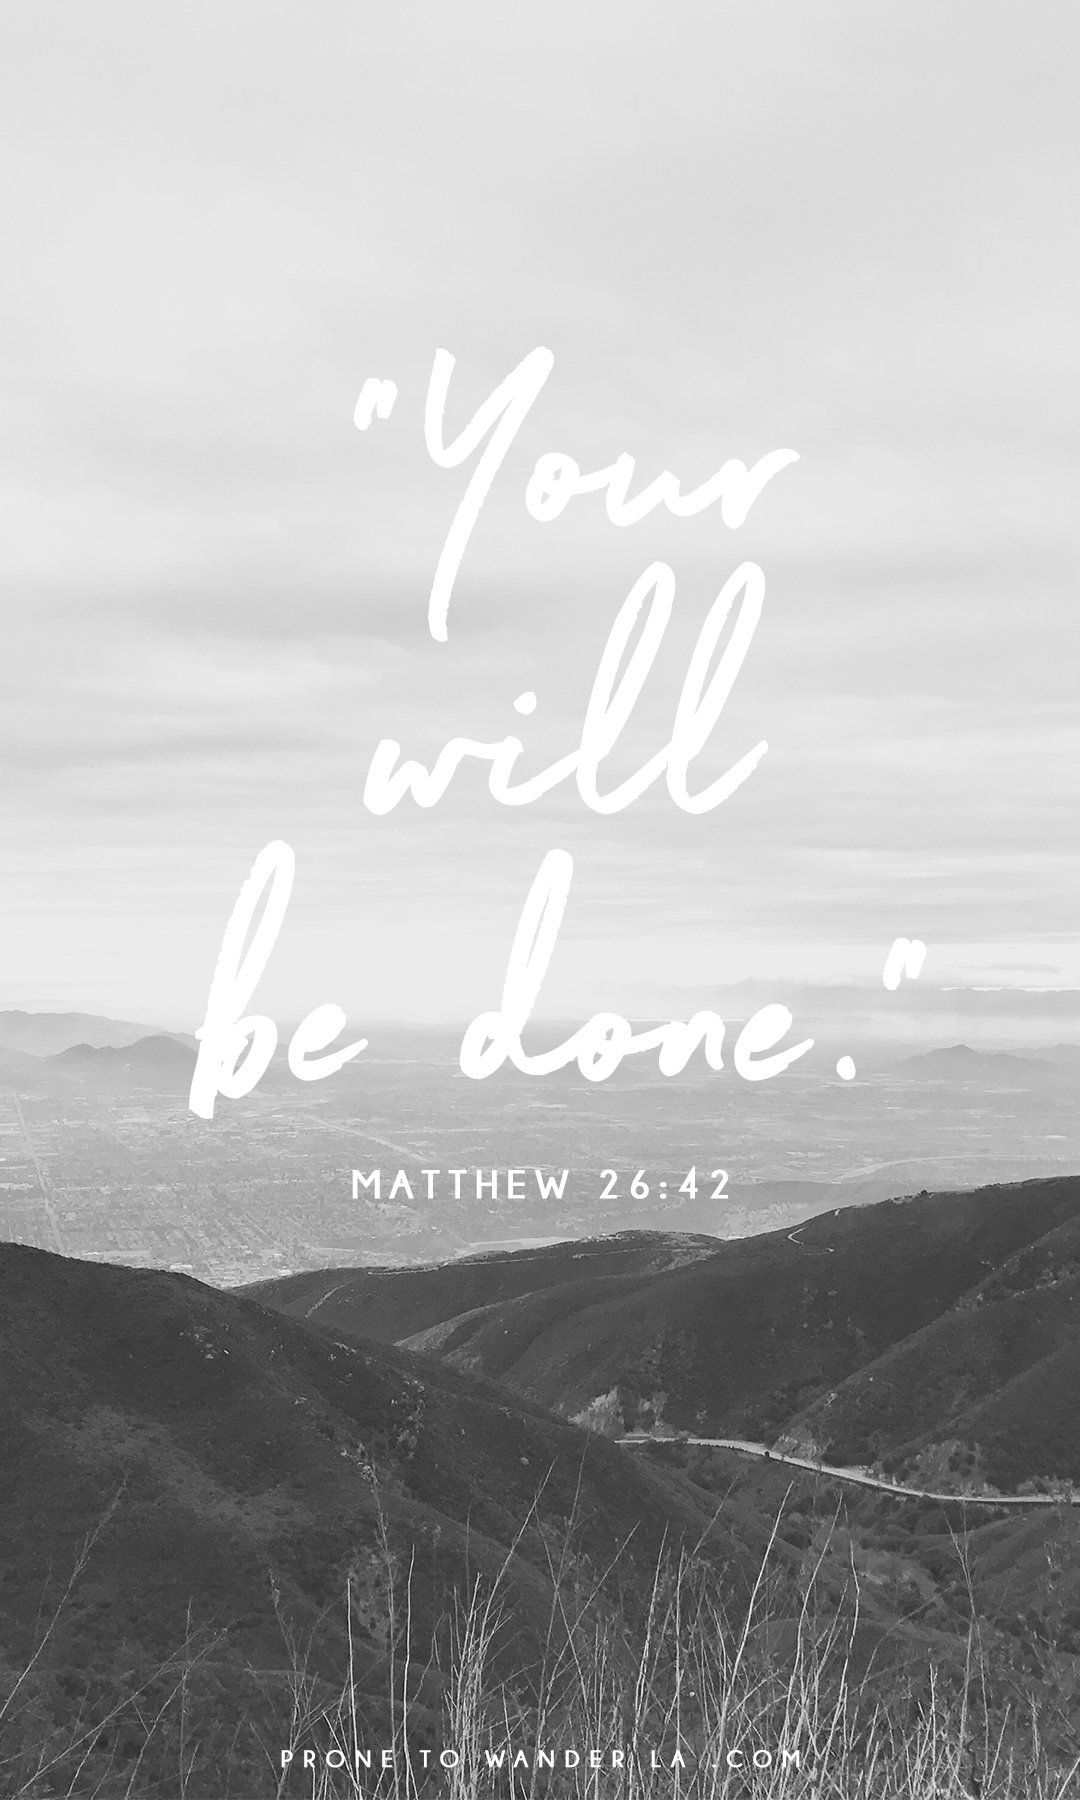 Your will be done. FREE iPhone Wallpapers from Prone to Wander. Inspiring quotes, bible verses ...